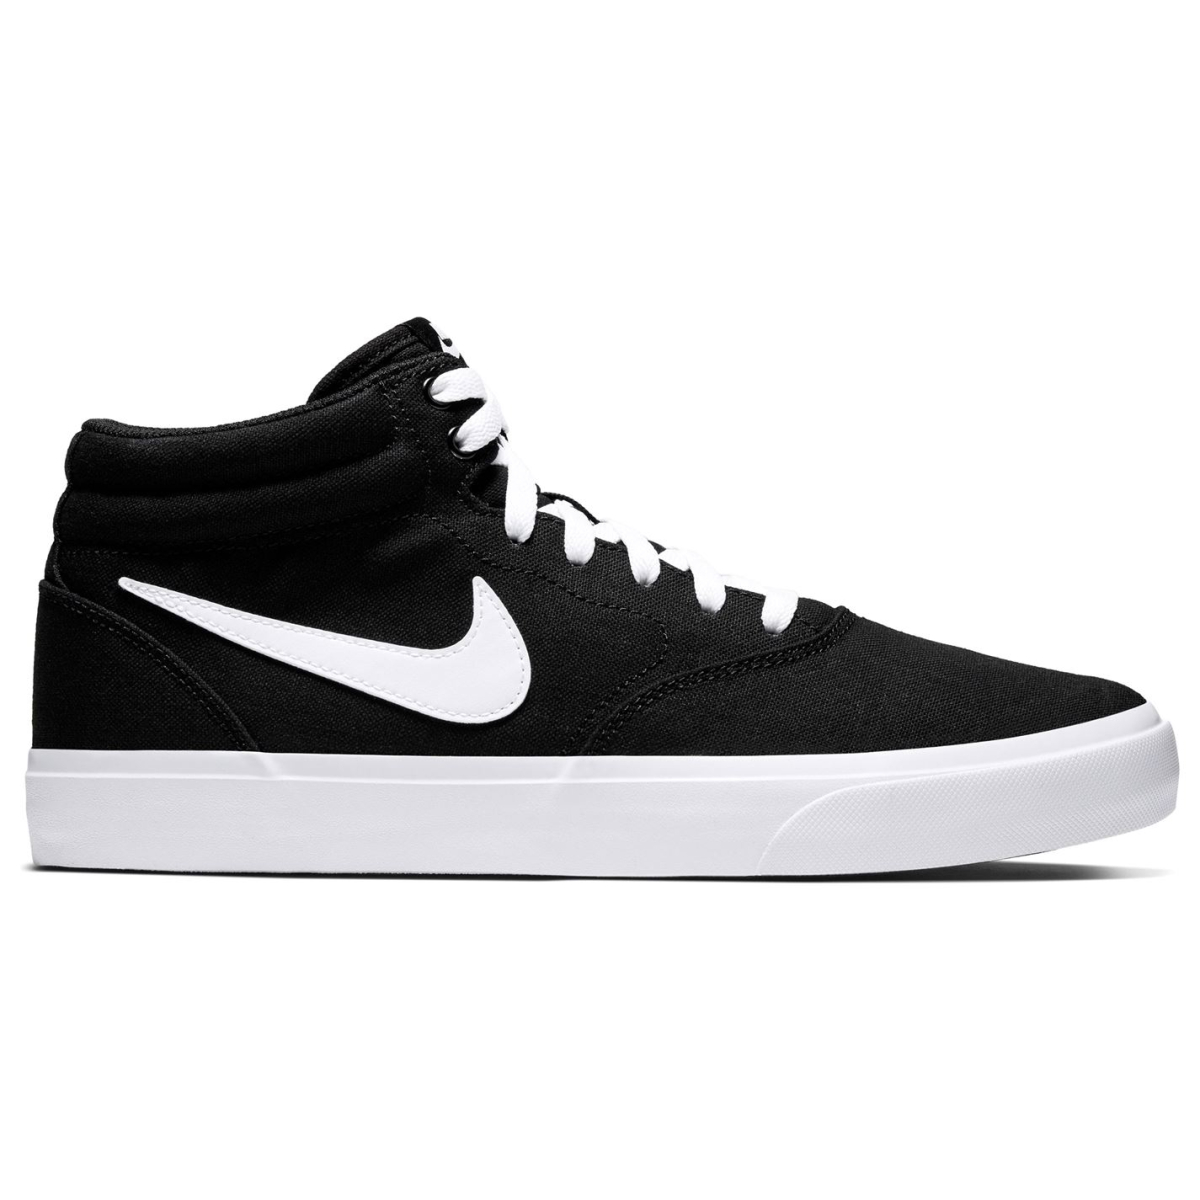 Nike-SB-Lot-Mid-Hommes-Skate-Chaussures-Skater-Chaussures-Chaussures-De-Sport-Toile-2017 miniature 4